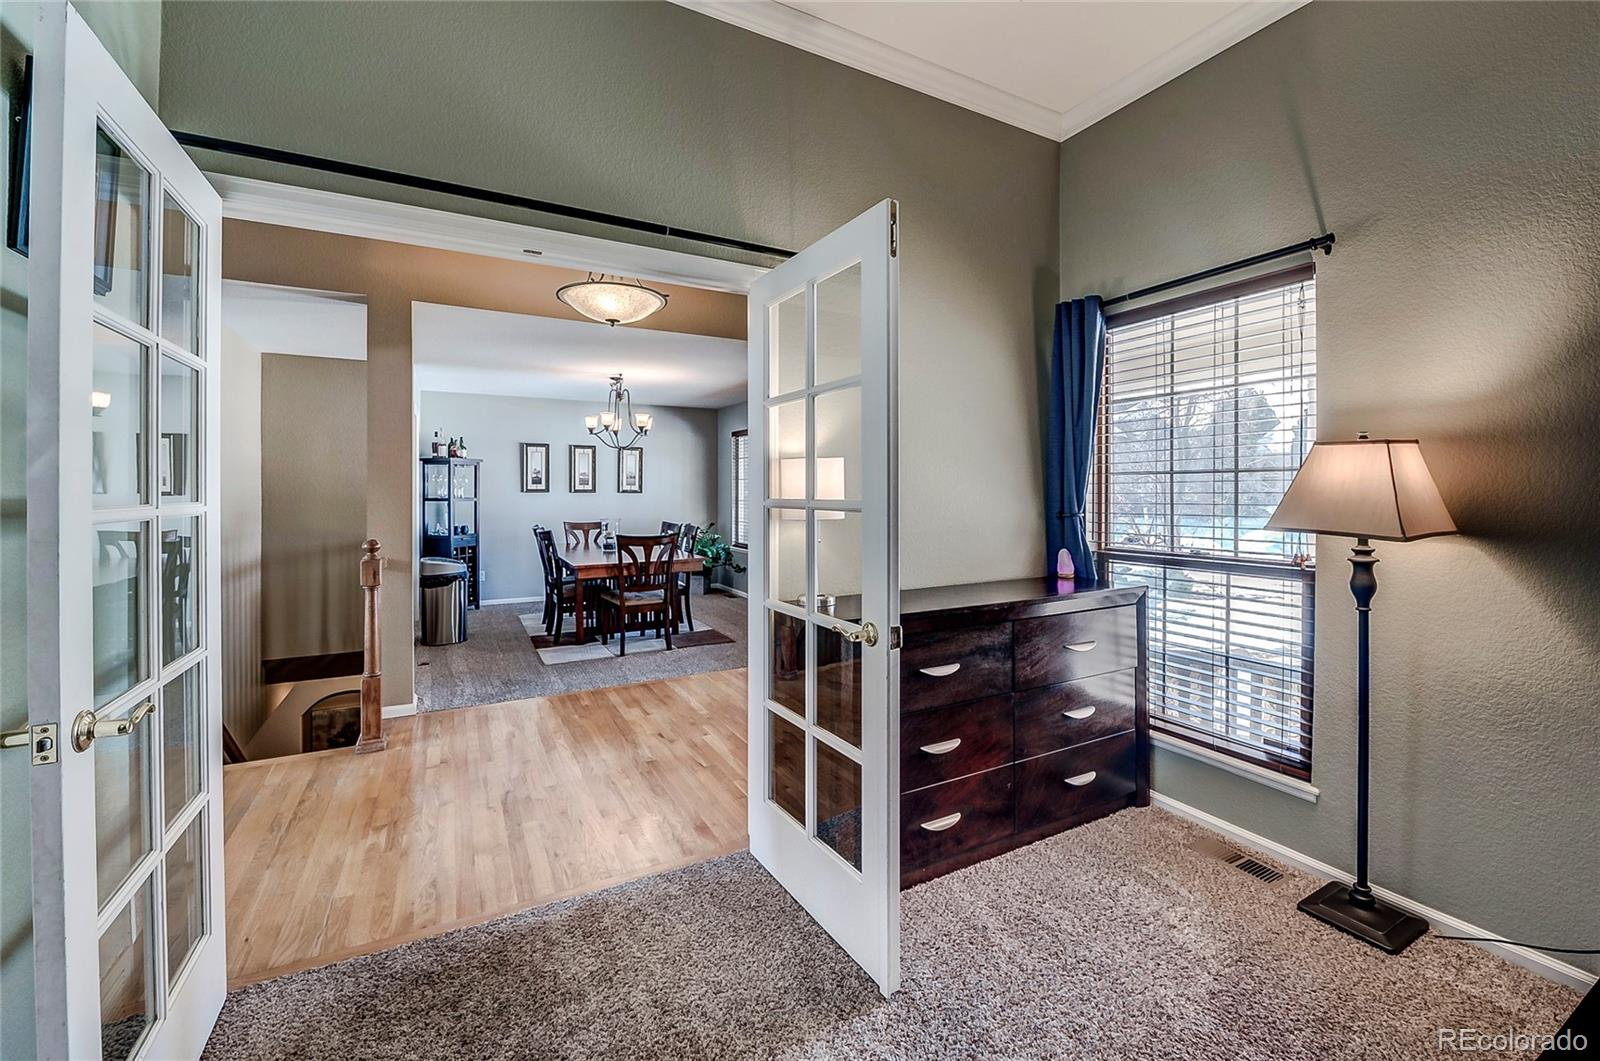 MLS# 4951528 - 10 - 15781 W 66th Place, Arvada, CO 80007